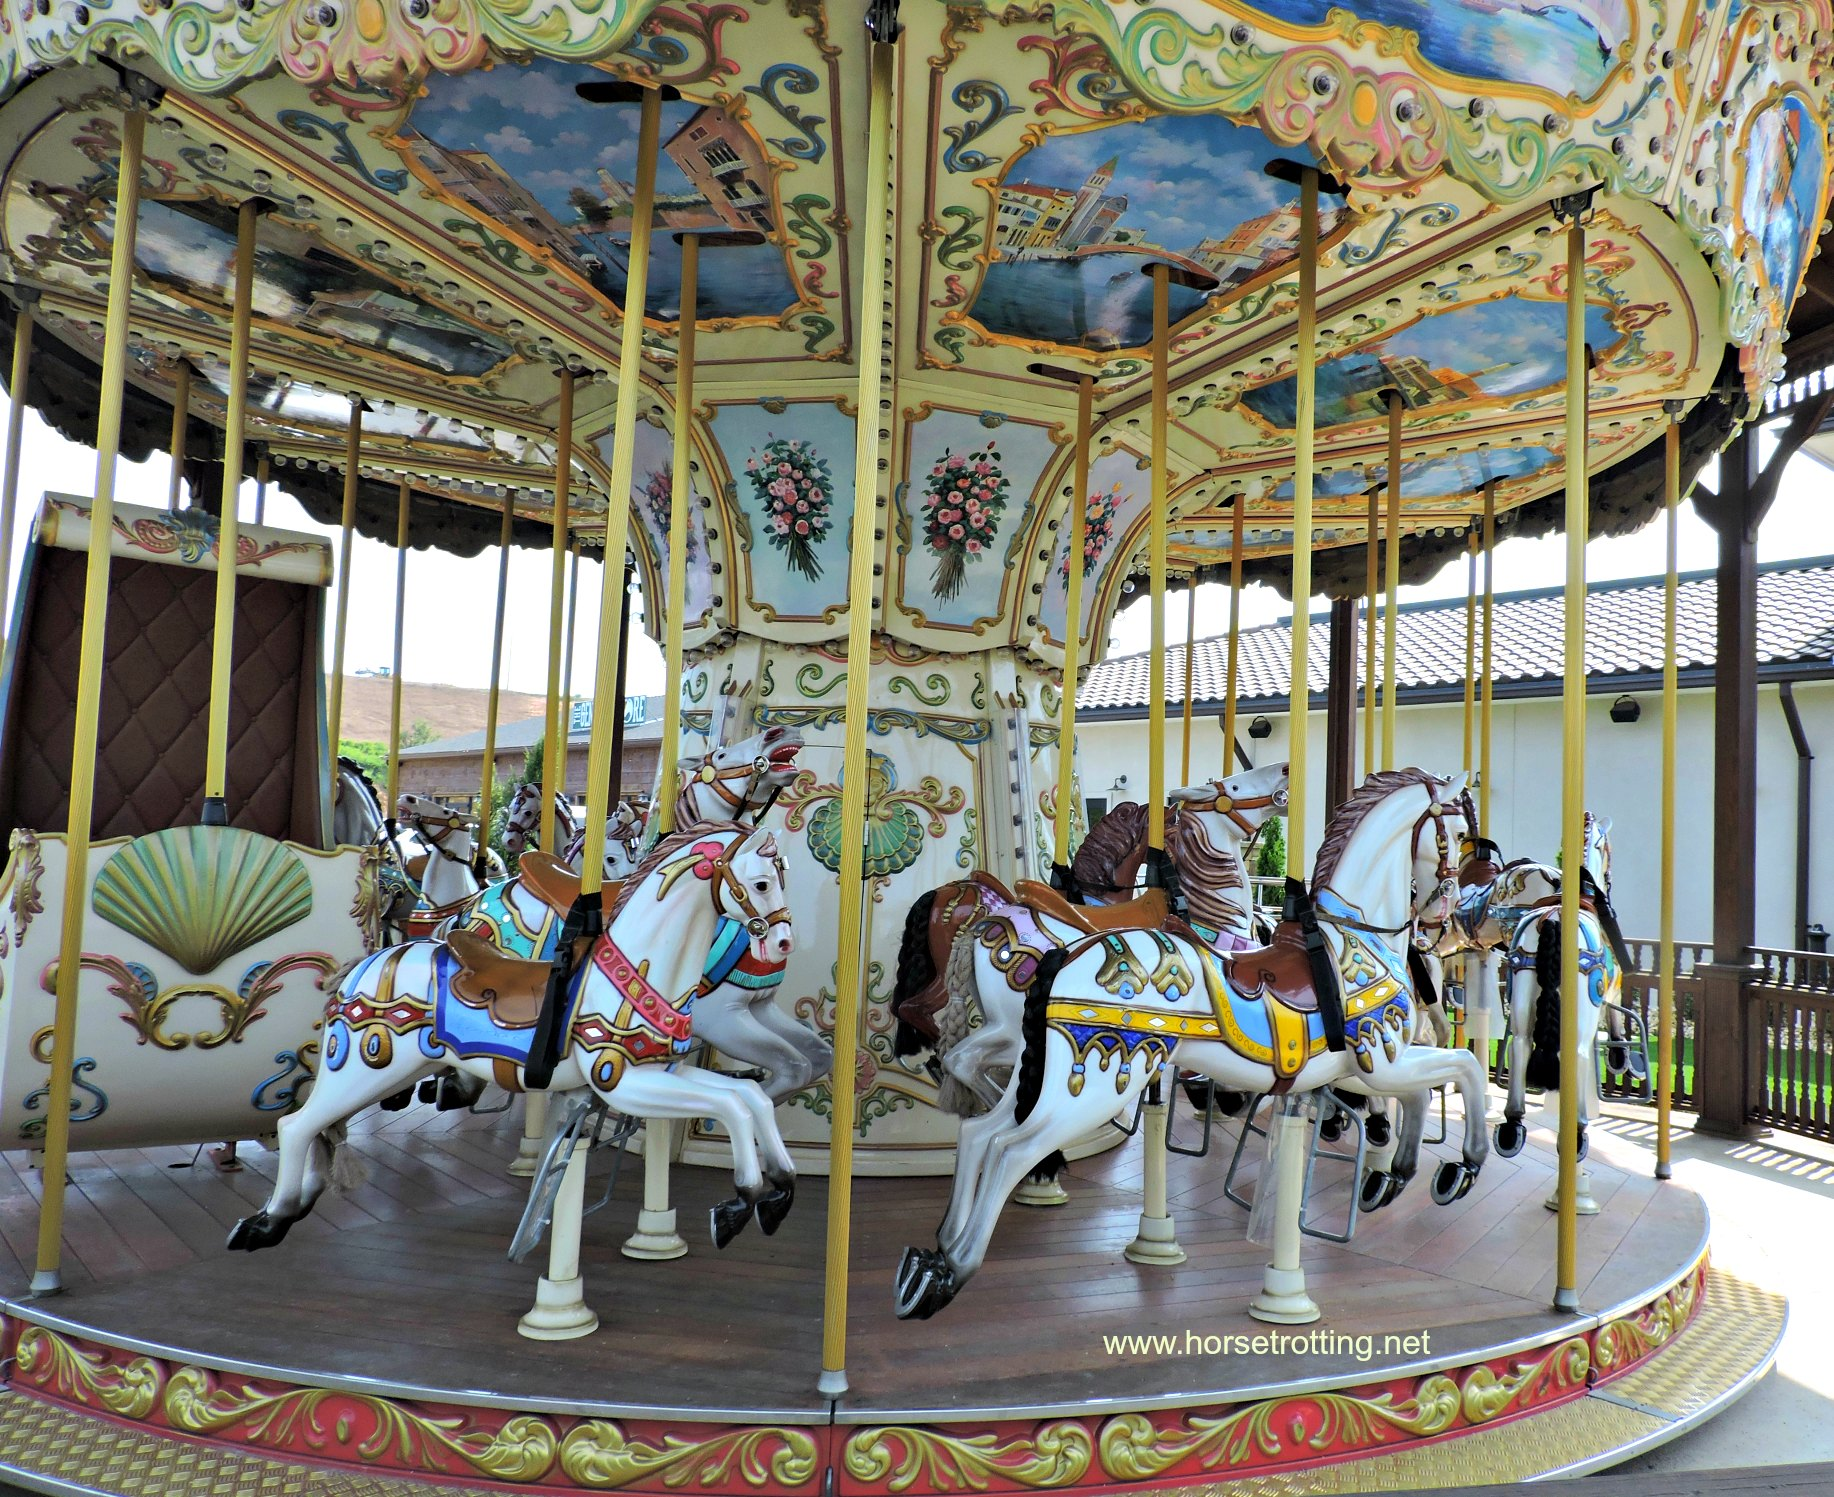 carousel at Tyron International Equestrian Center, North Carolina